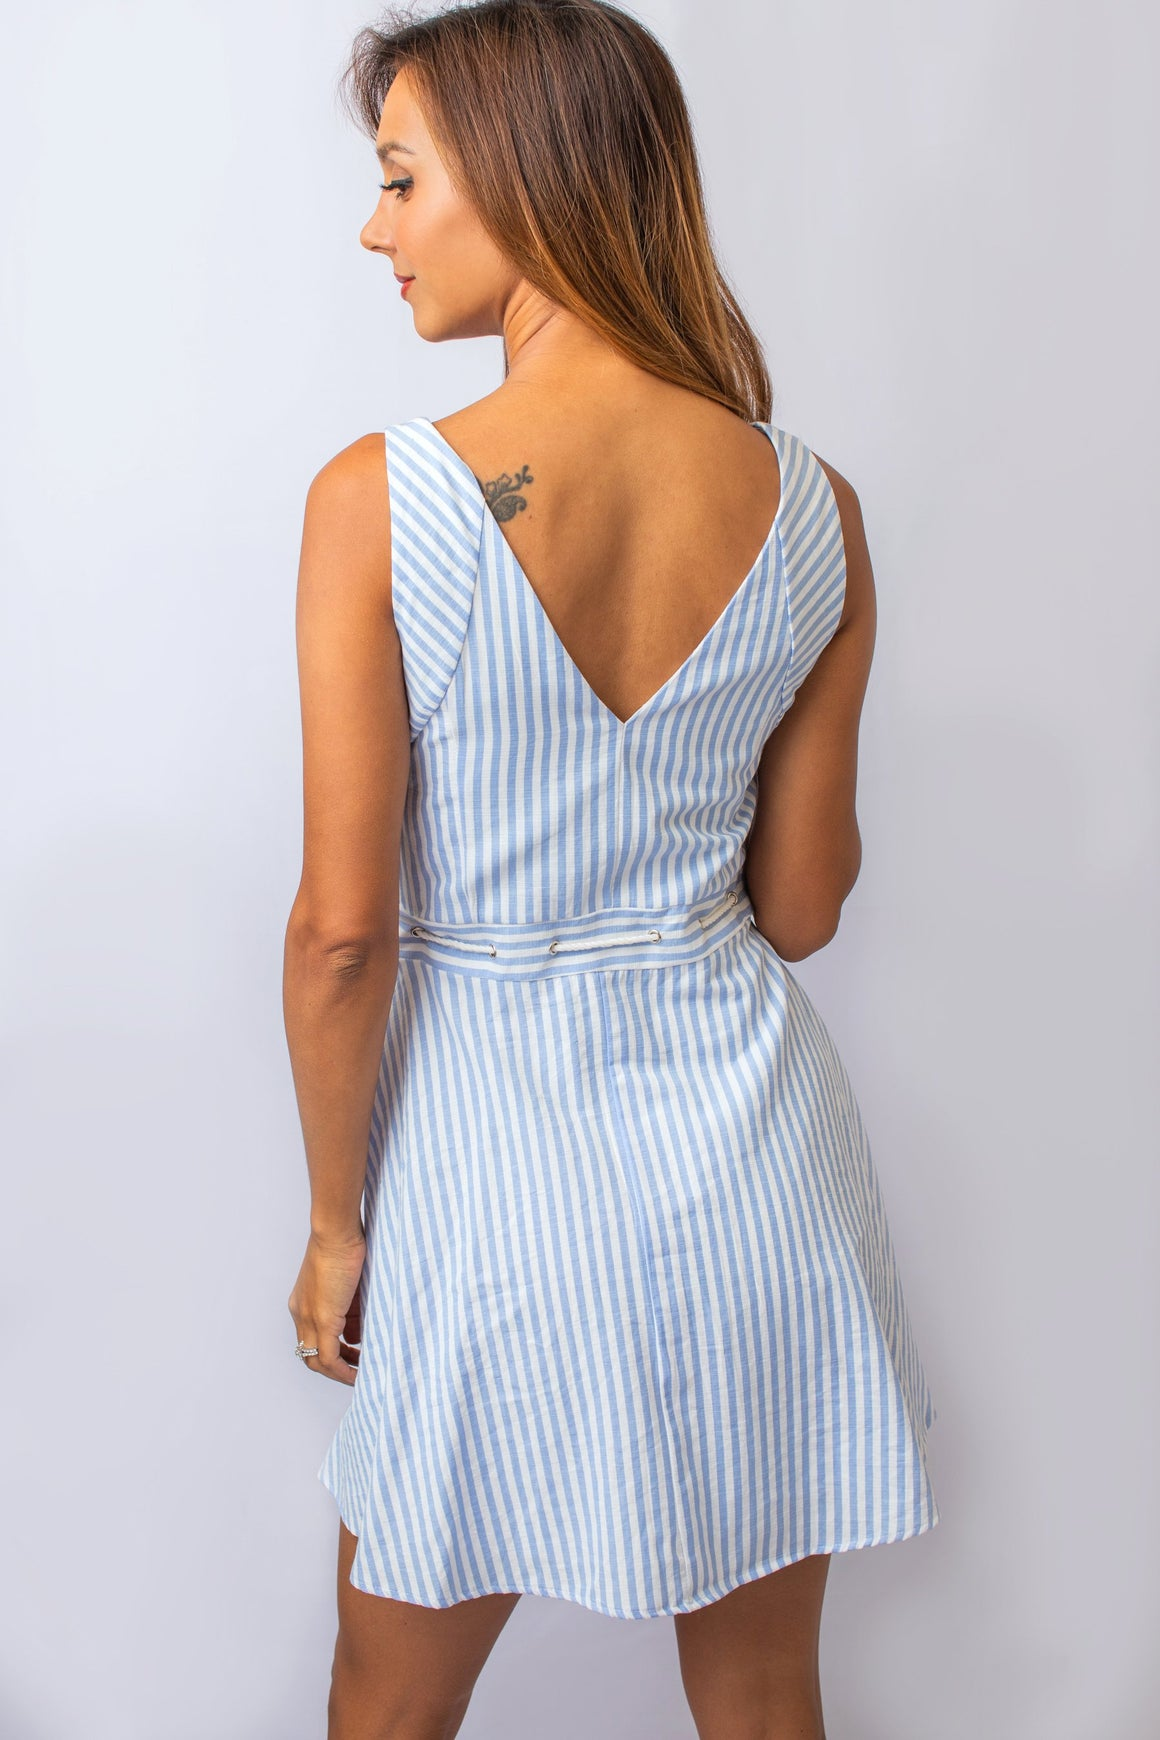 Blue and White Striped Nautical Style Dress